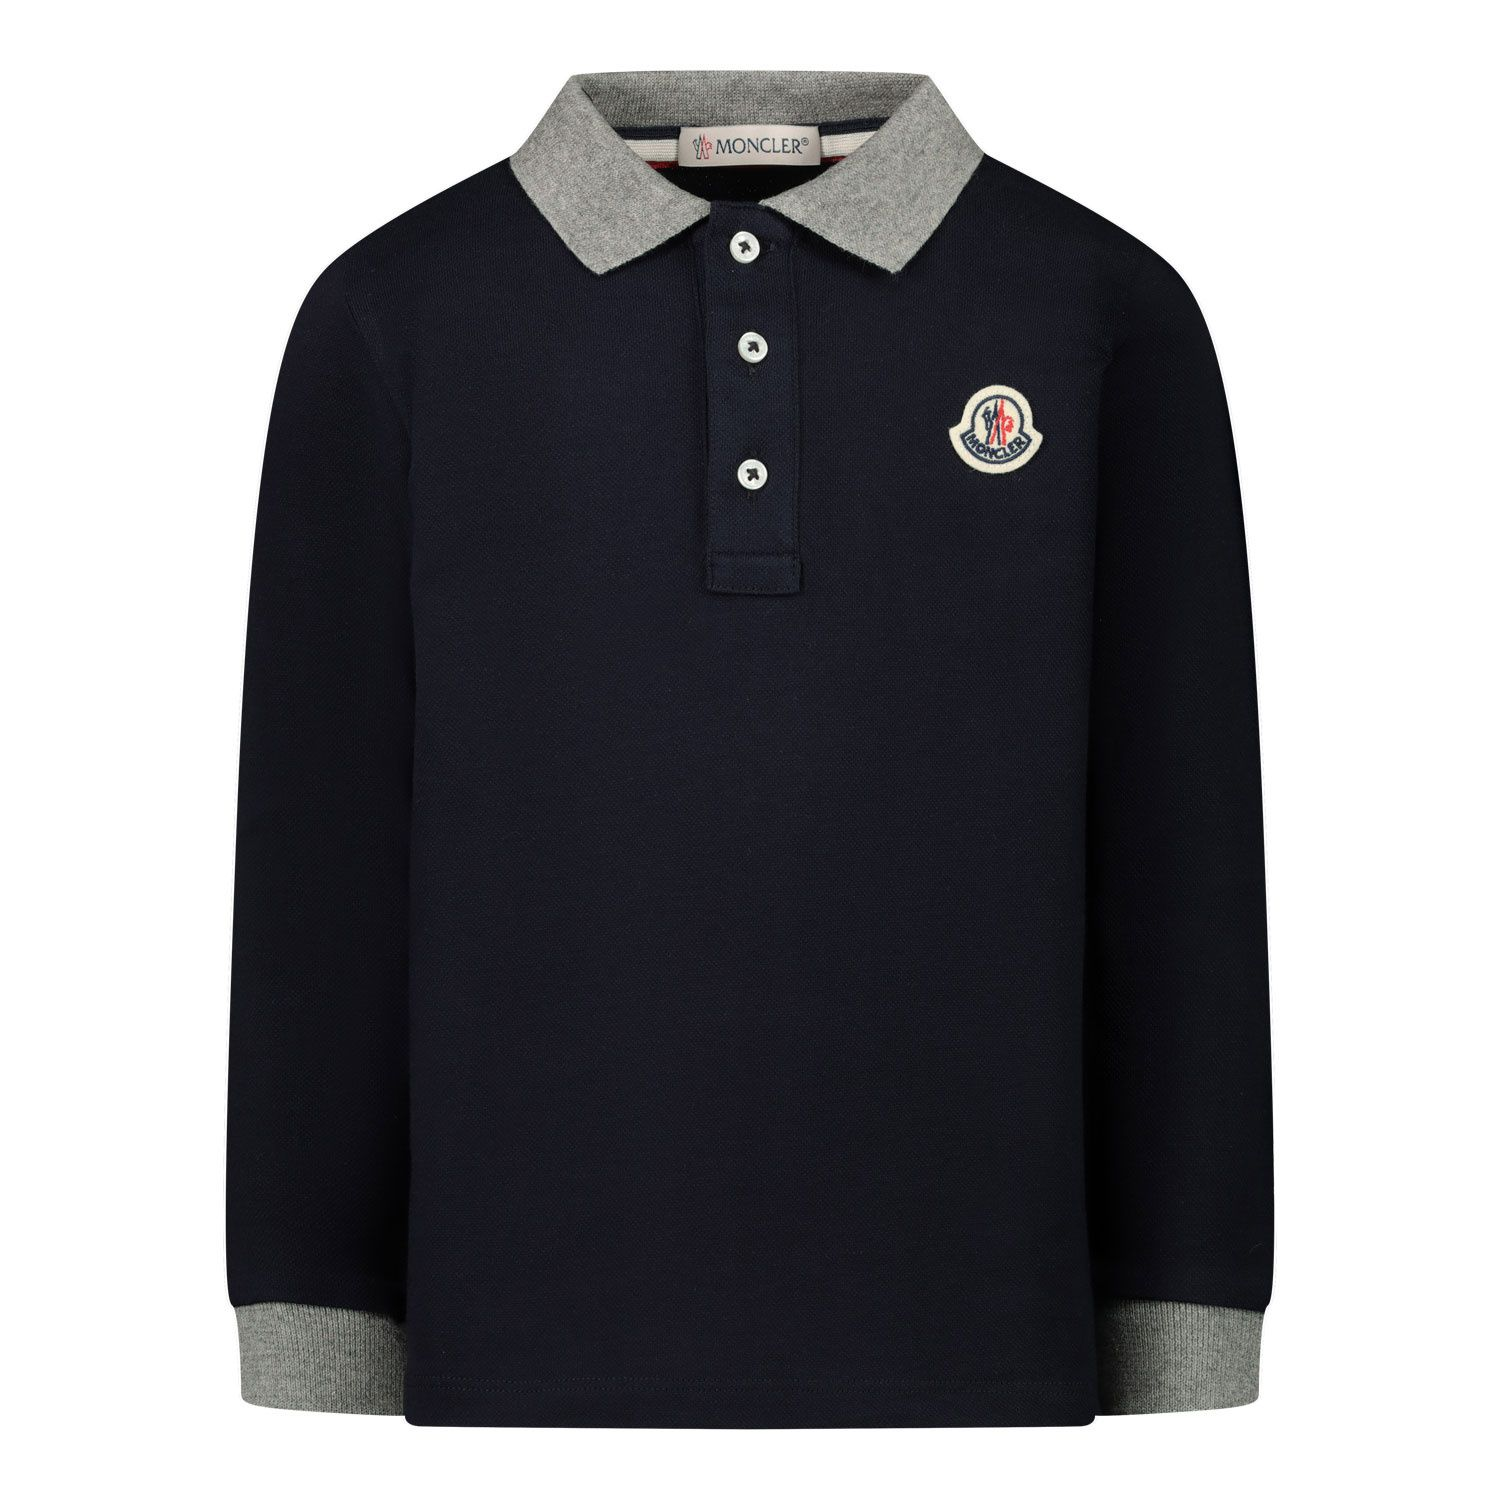 Picture of Moncler 8B70520 baby poloshirt navy